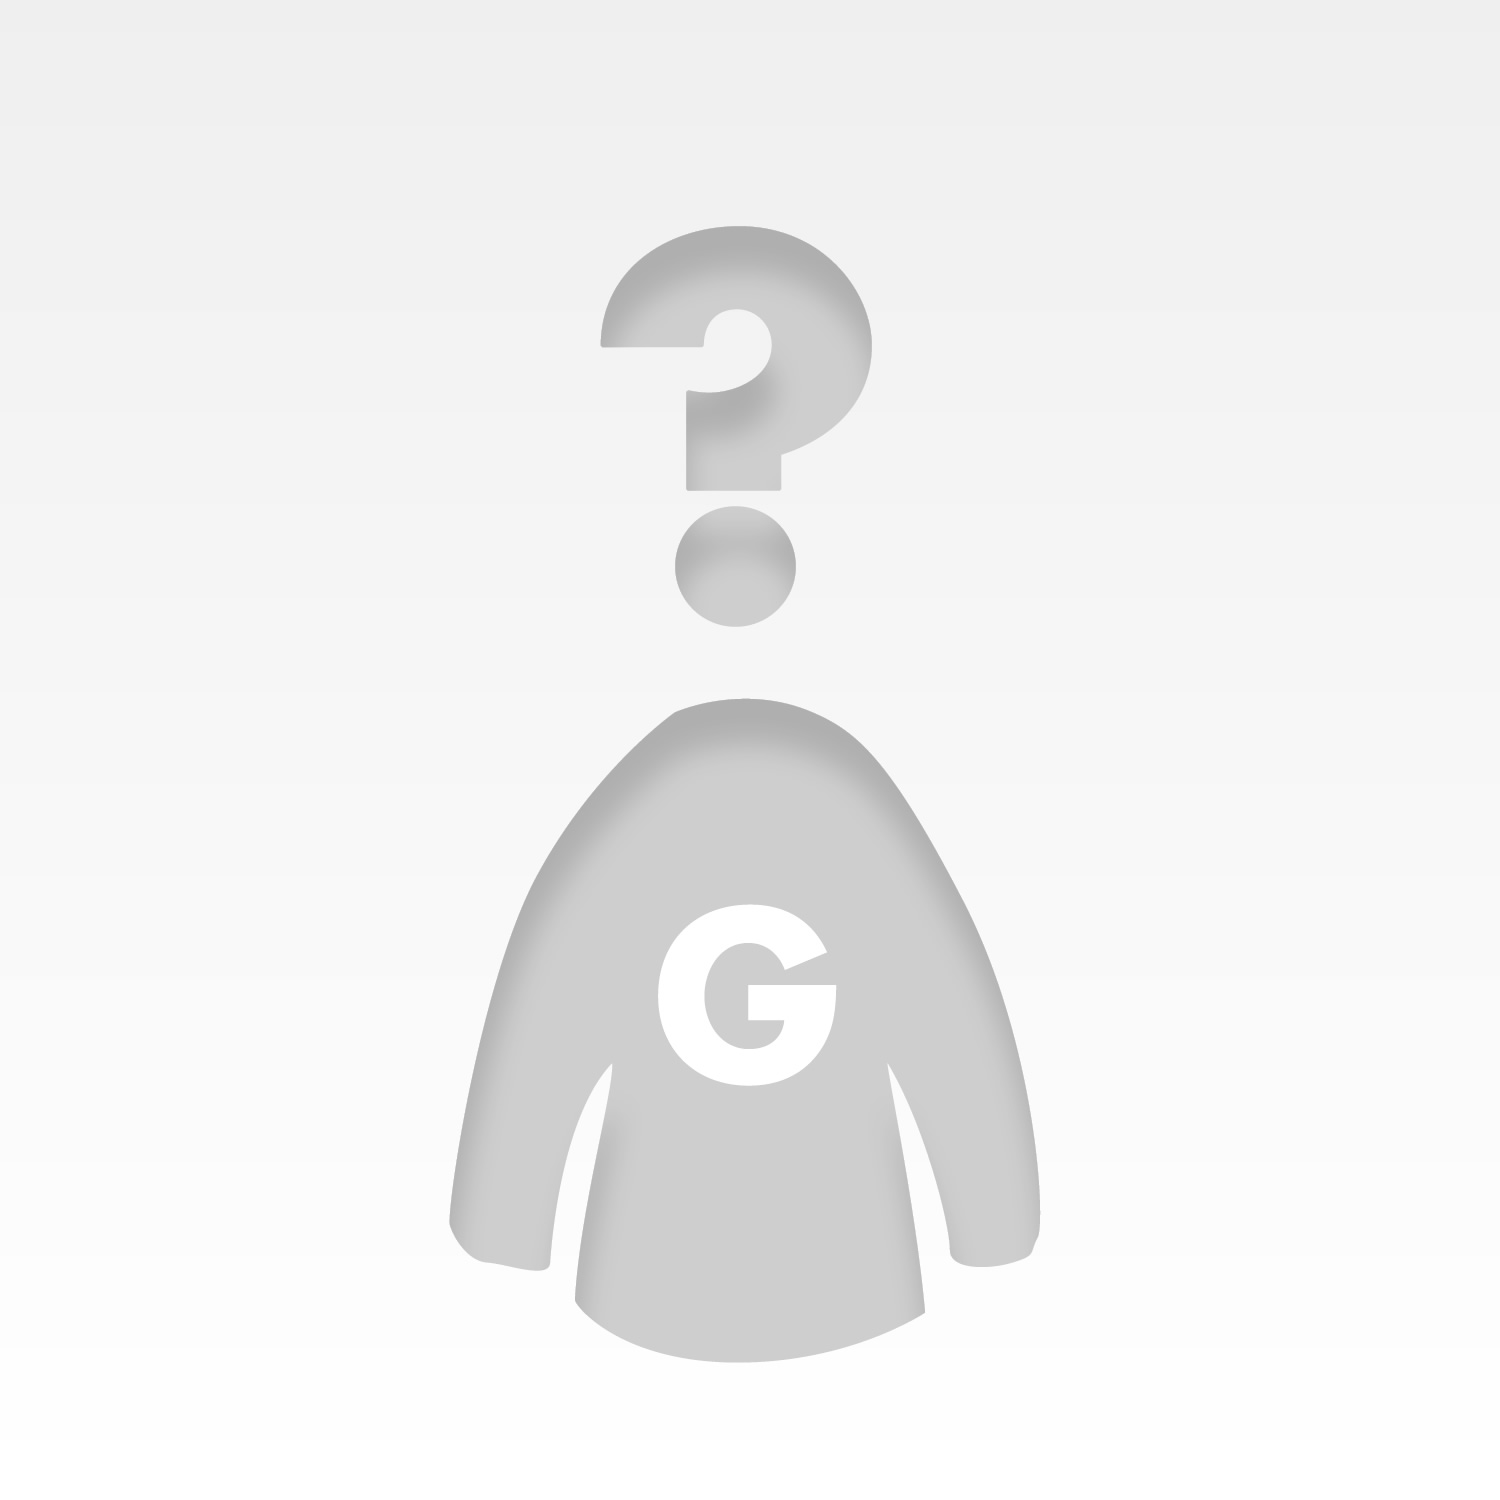 eduglogs\'s avatar